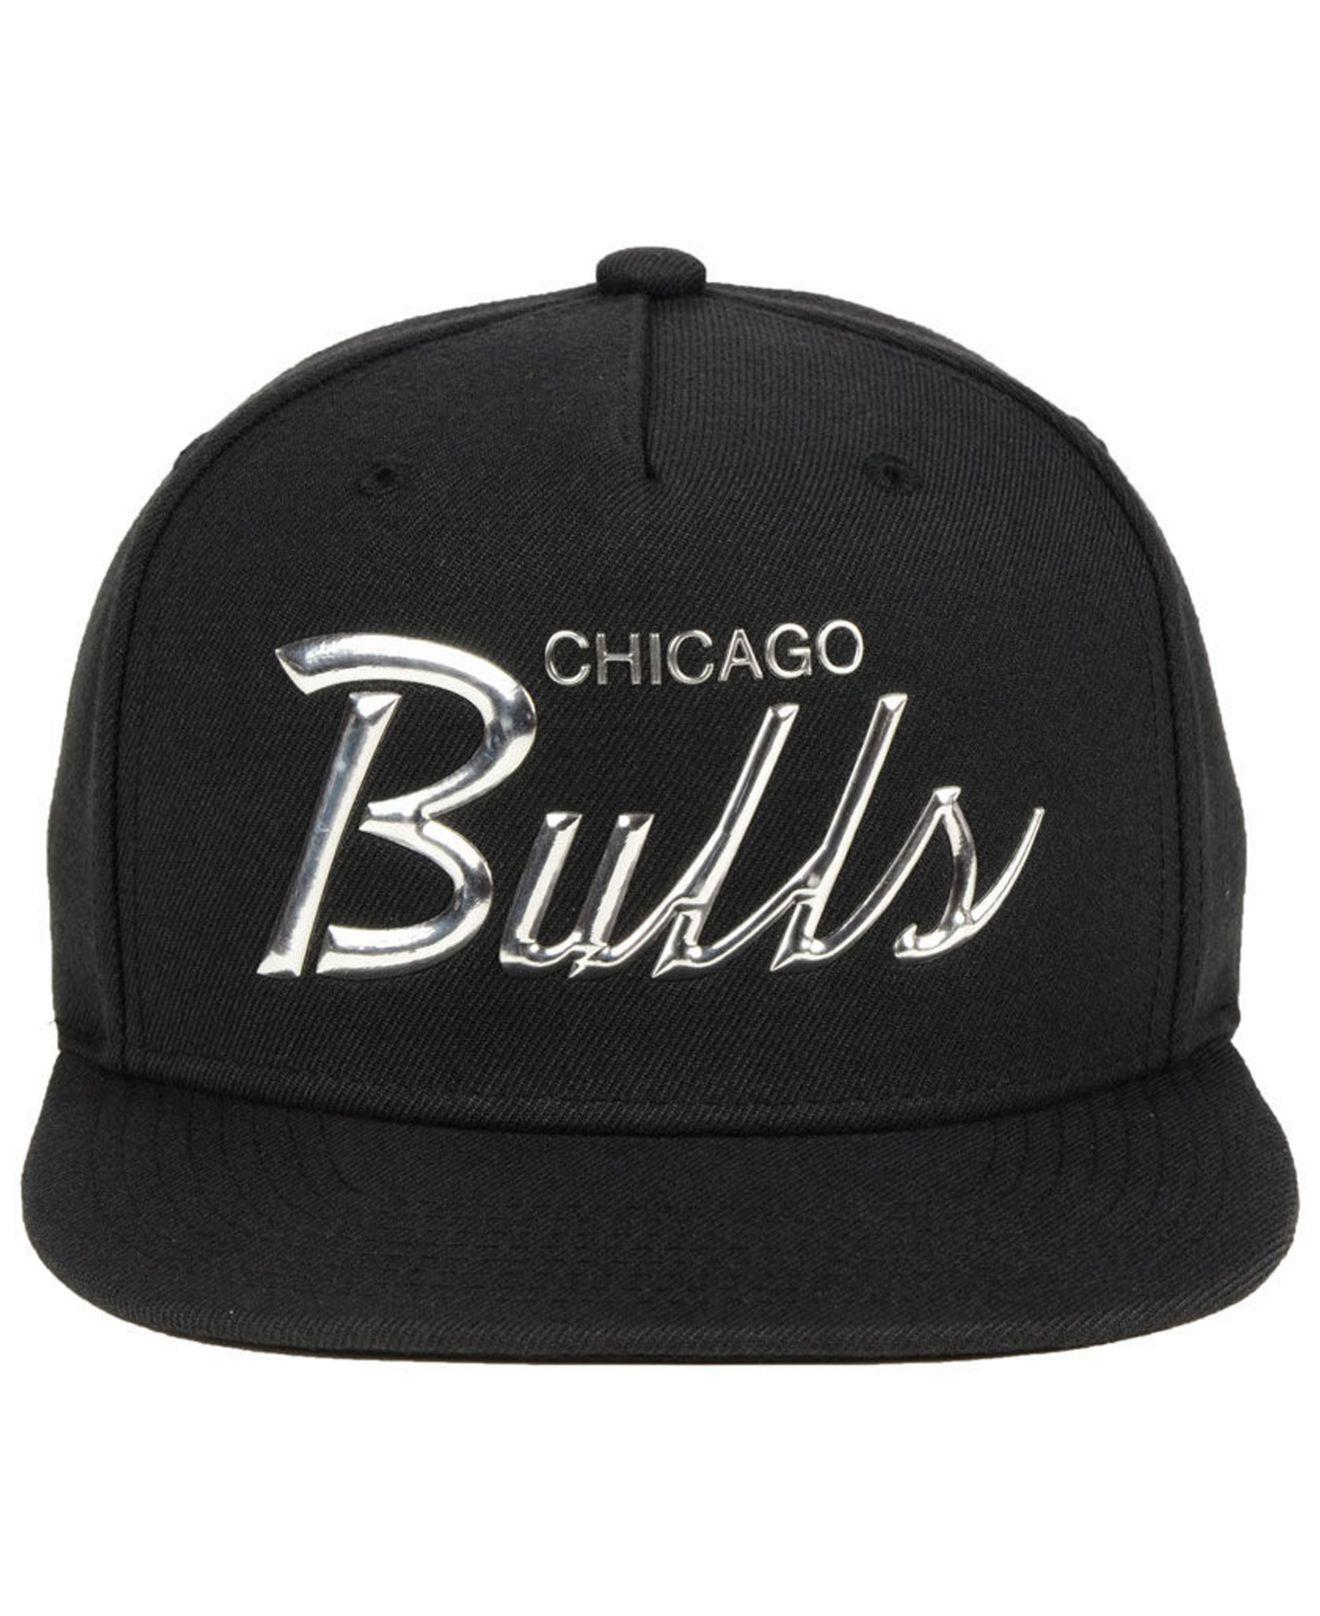 online retailer 368a1 215ad Lyst - Mitchell   Ness Chicago Bulls Metallic Tempered Snapback Cap in  Black for Men